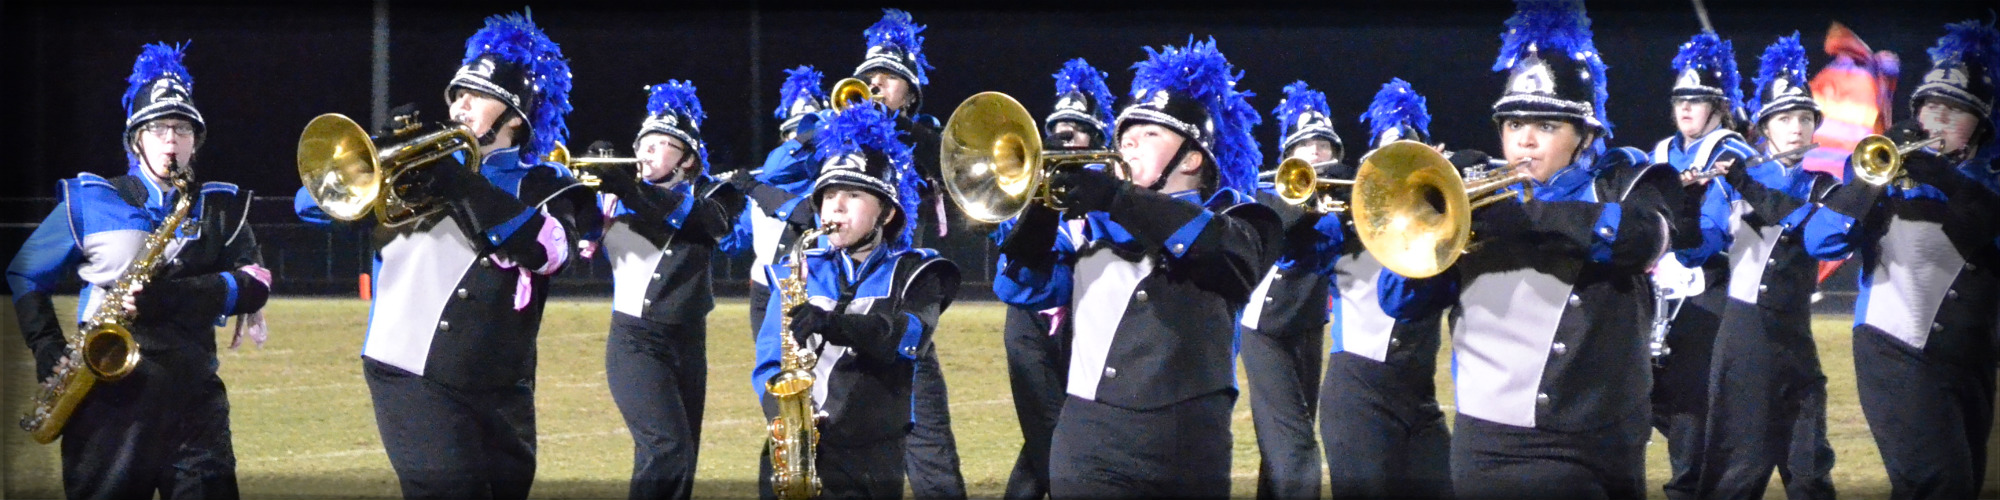 EHHS Marching Eagles